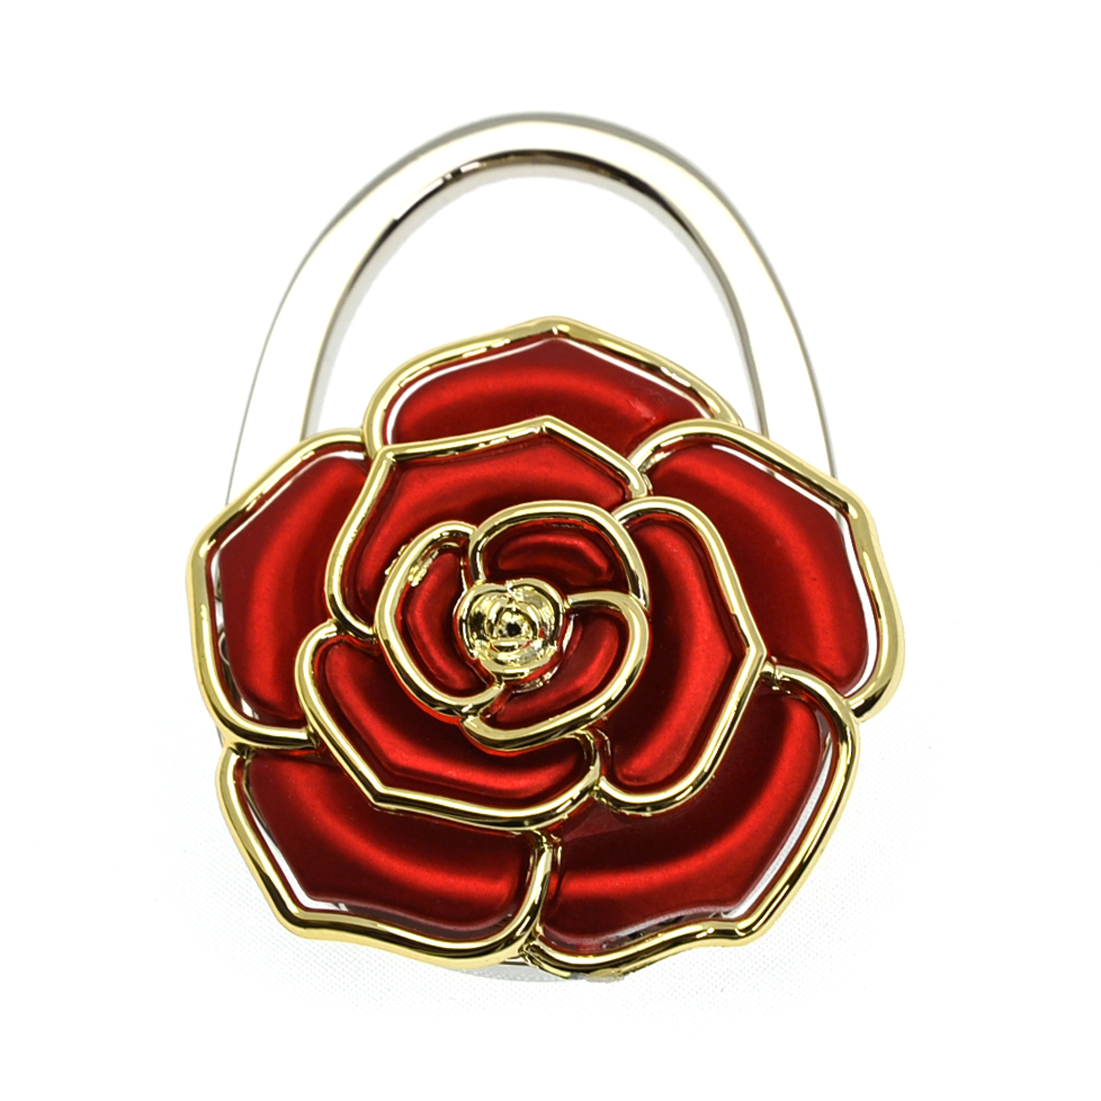 Foldable Gold Tone Accent Rose Purse Hanger